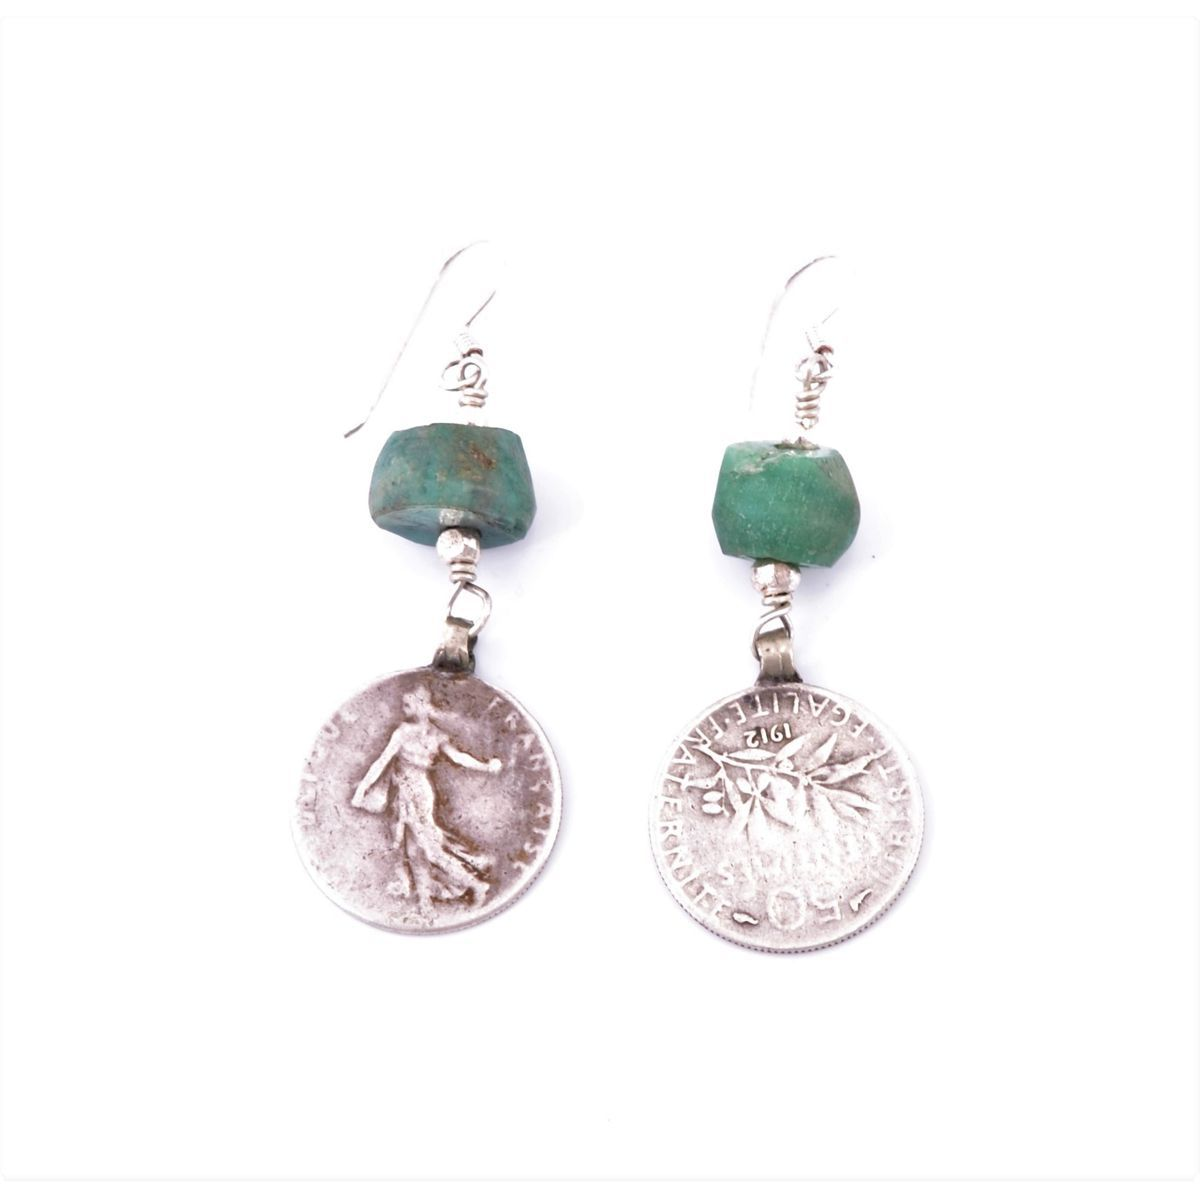 French coin pendant earrings Green BRASS Gioielli